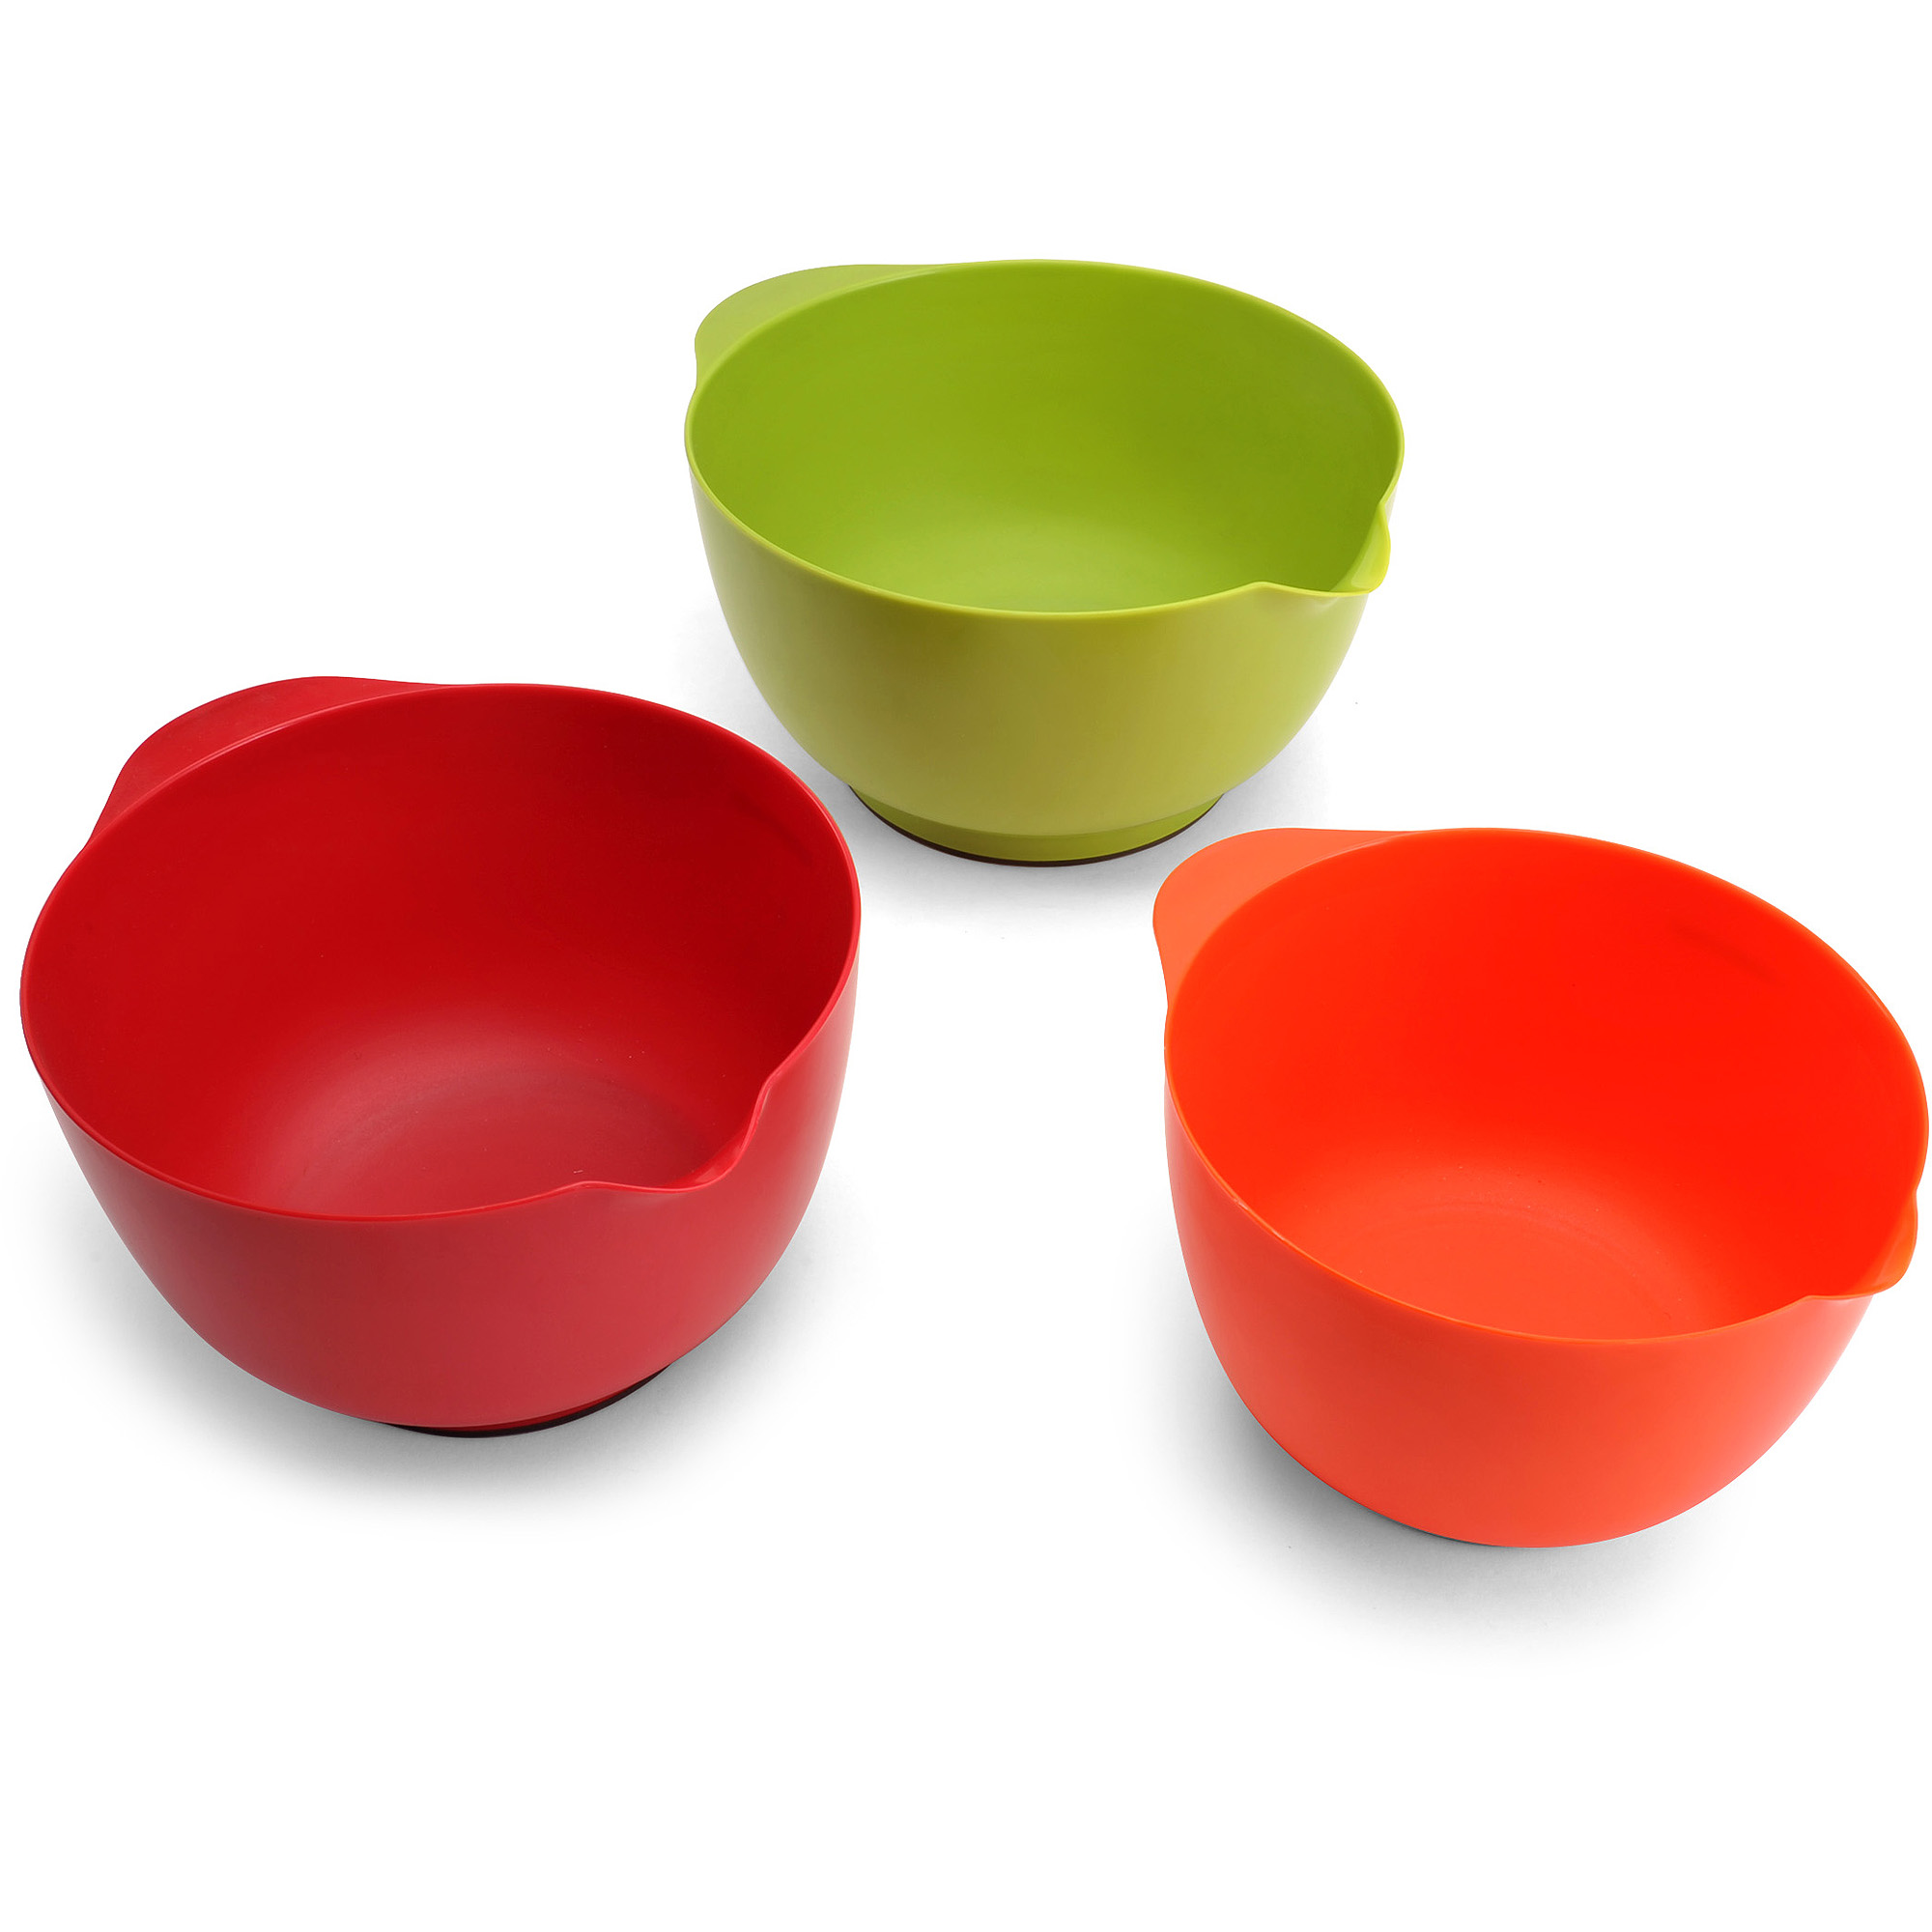 Farberware Set of 3 Mixing Bowls, Red, Green and Orange